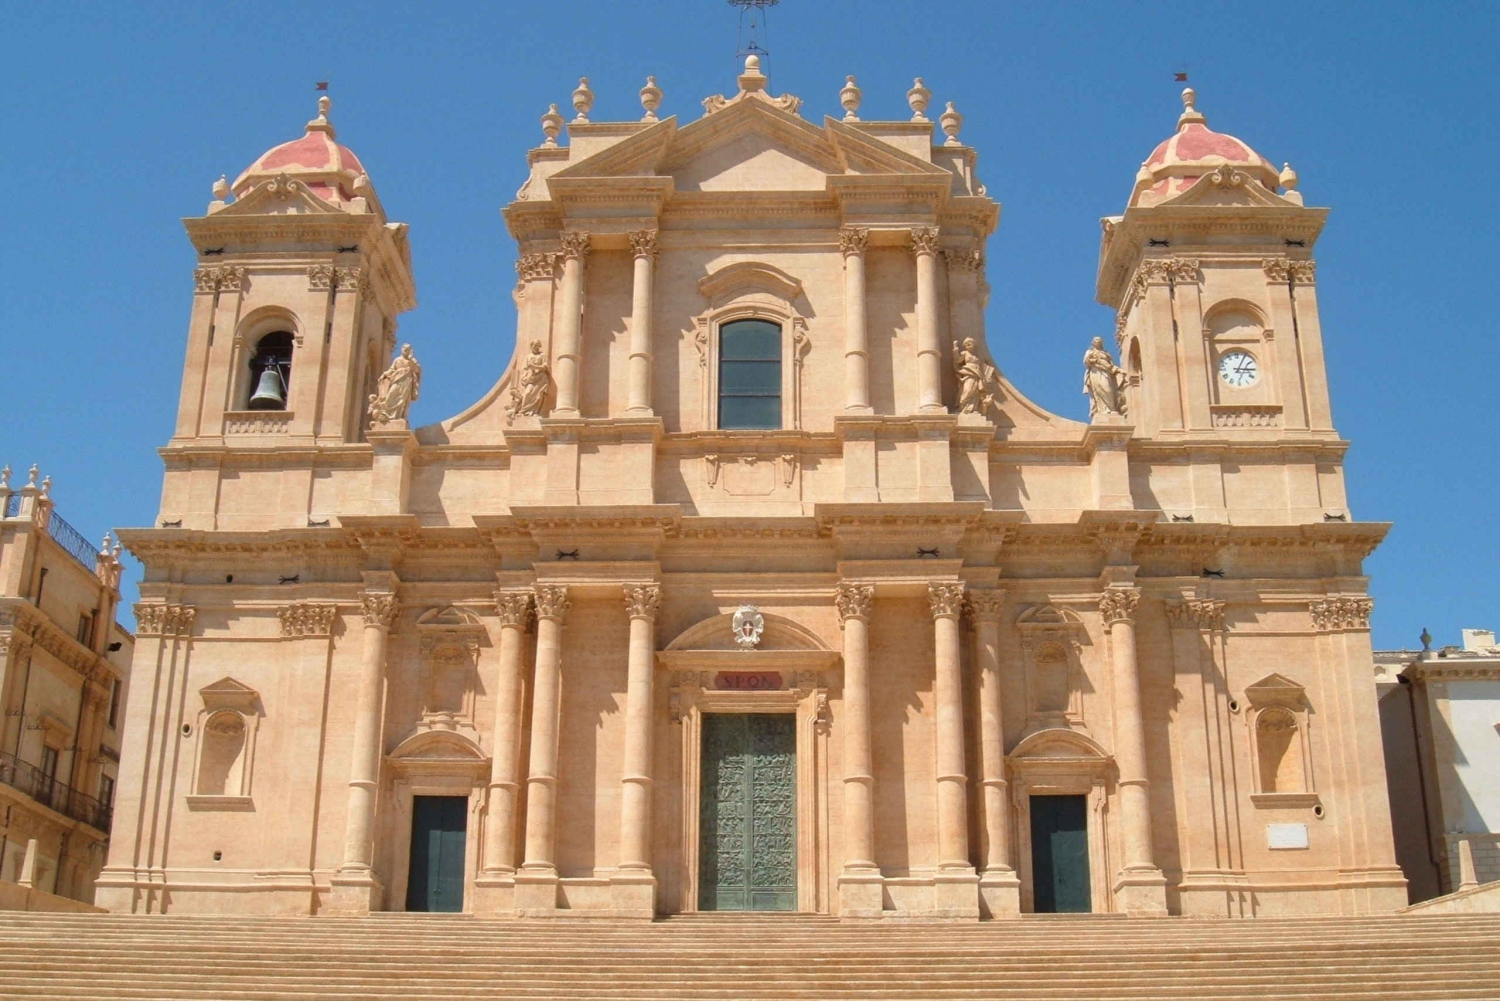 From Taormina: Full Day Tour to Noto and Marzamemi